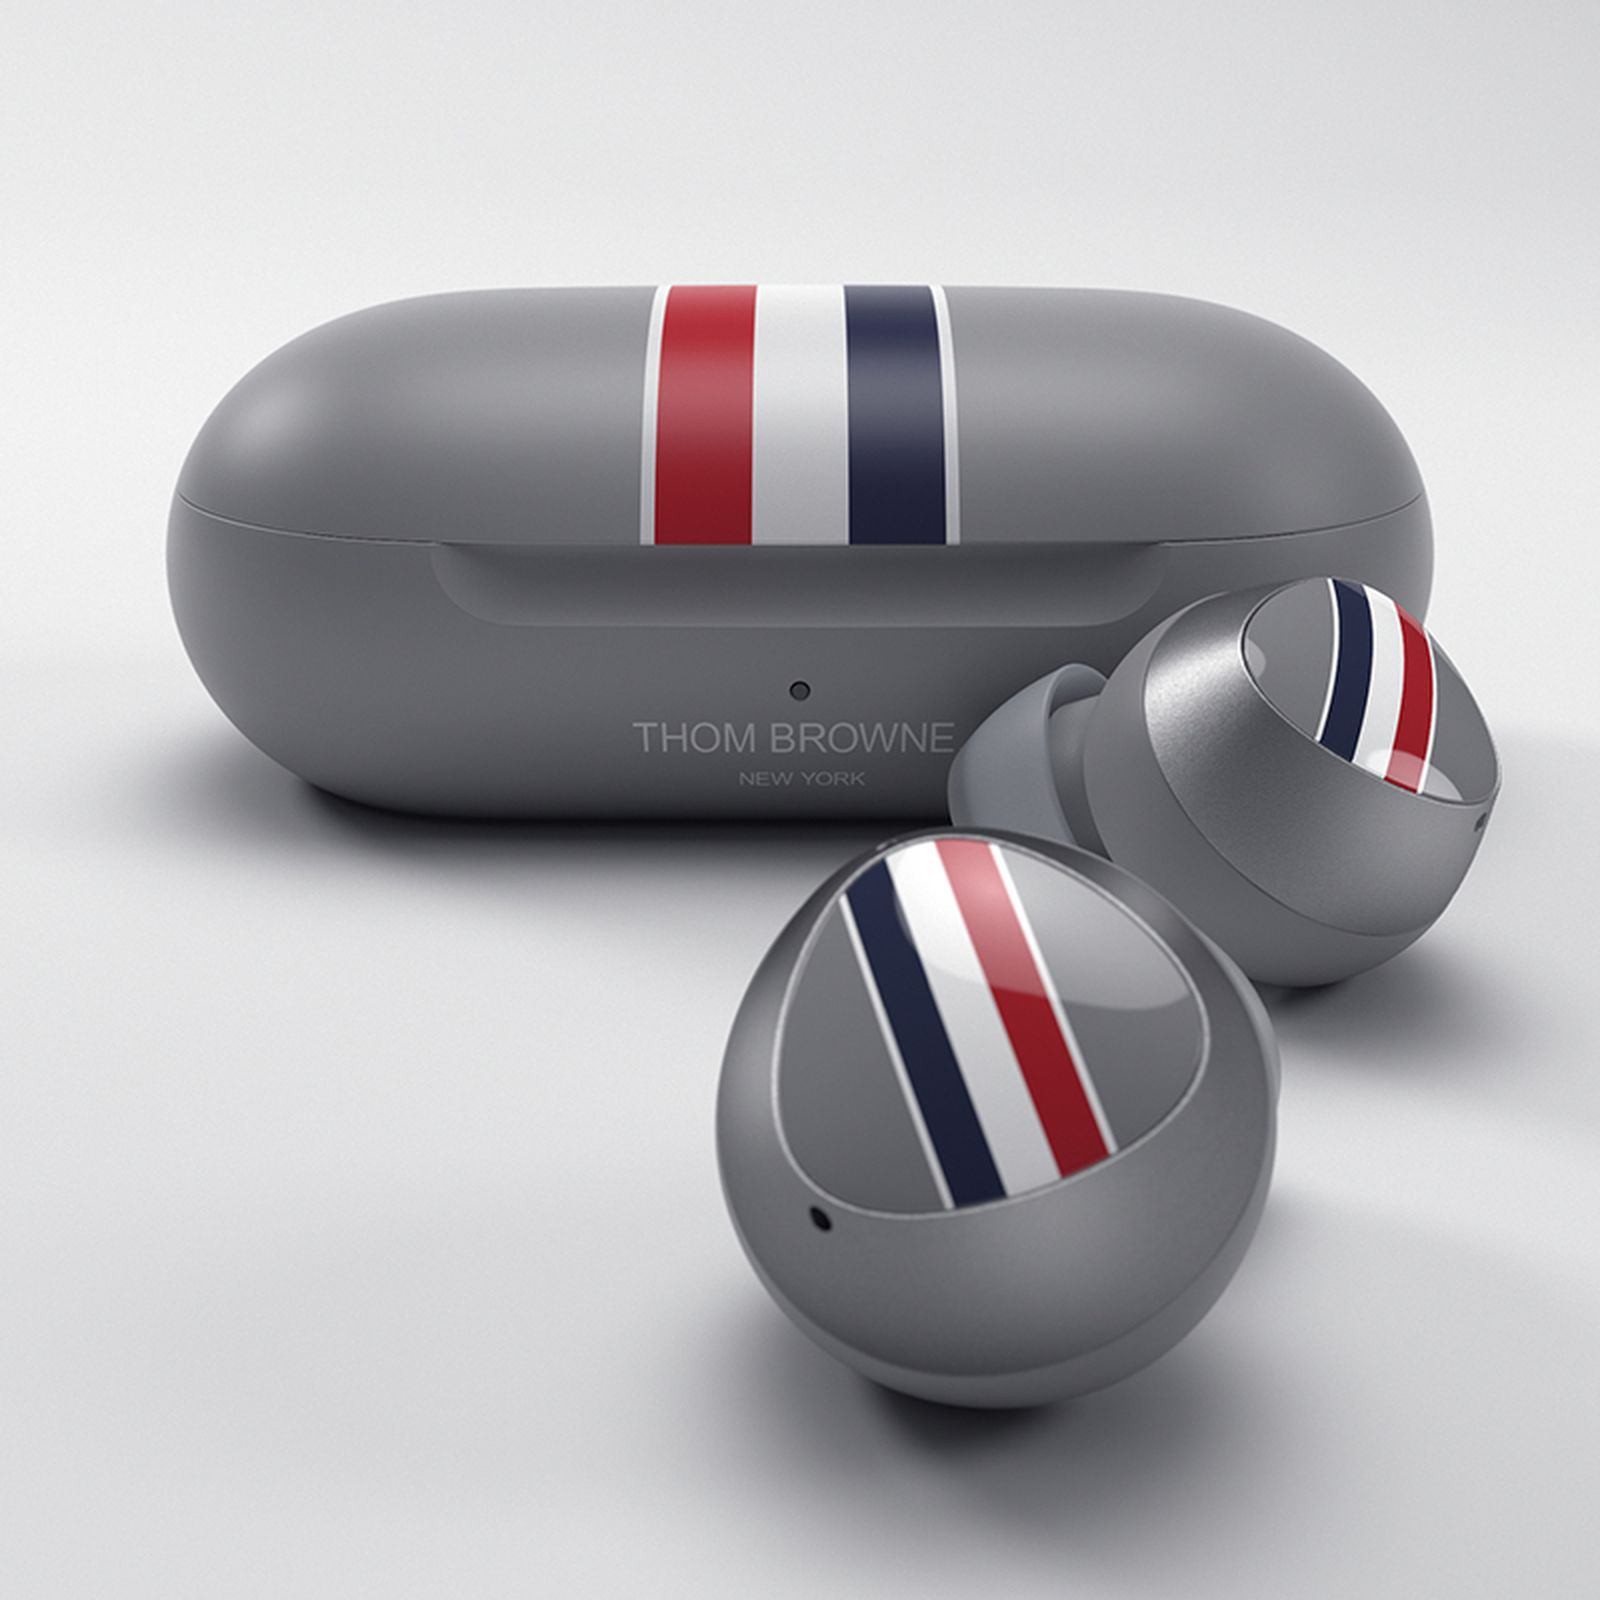 Samsung Galaxy Buds+ Thom Browne Edition